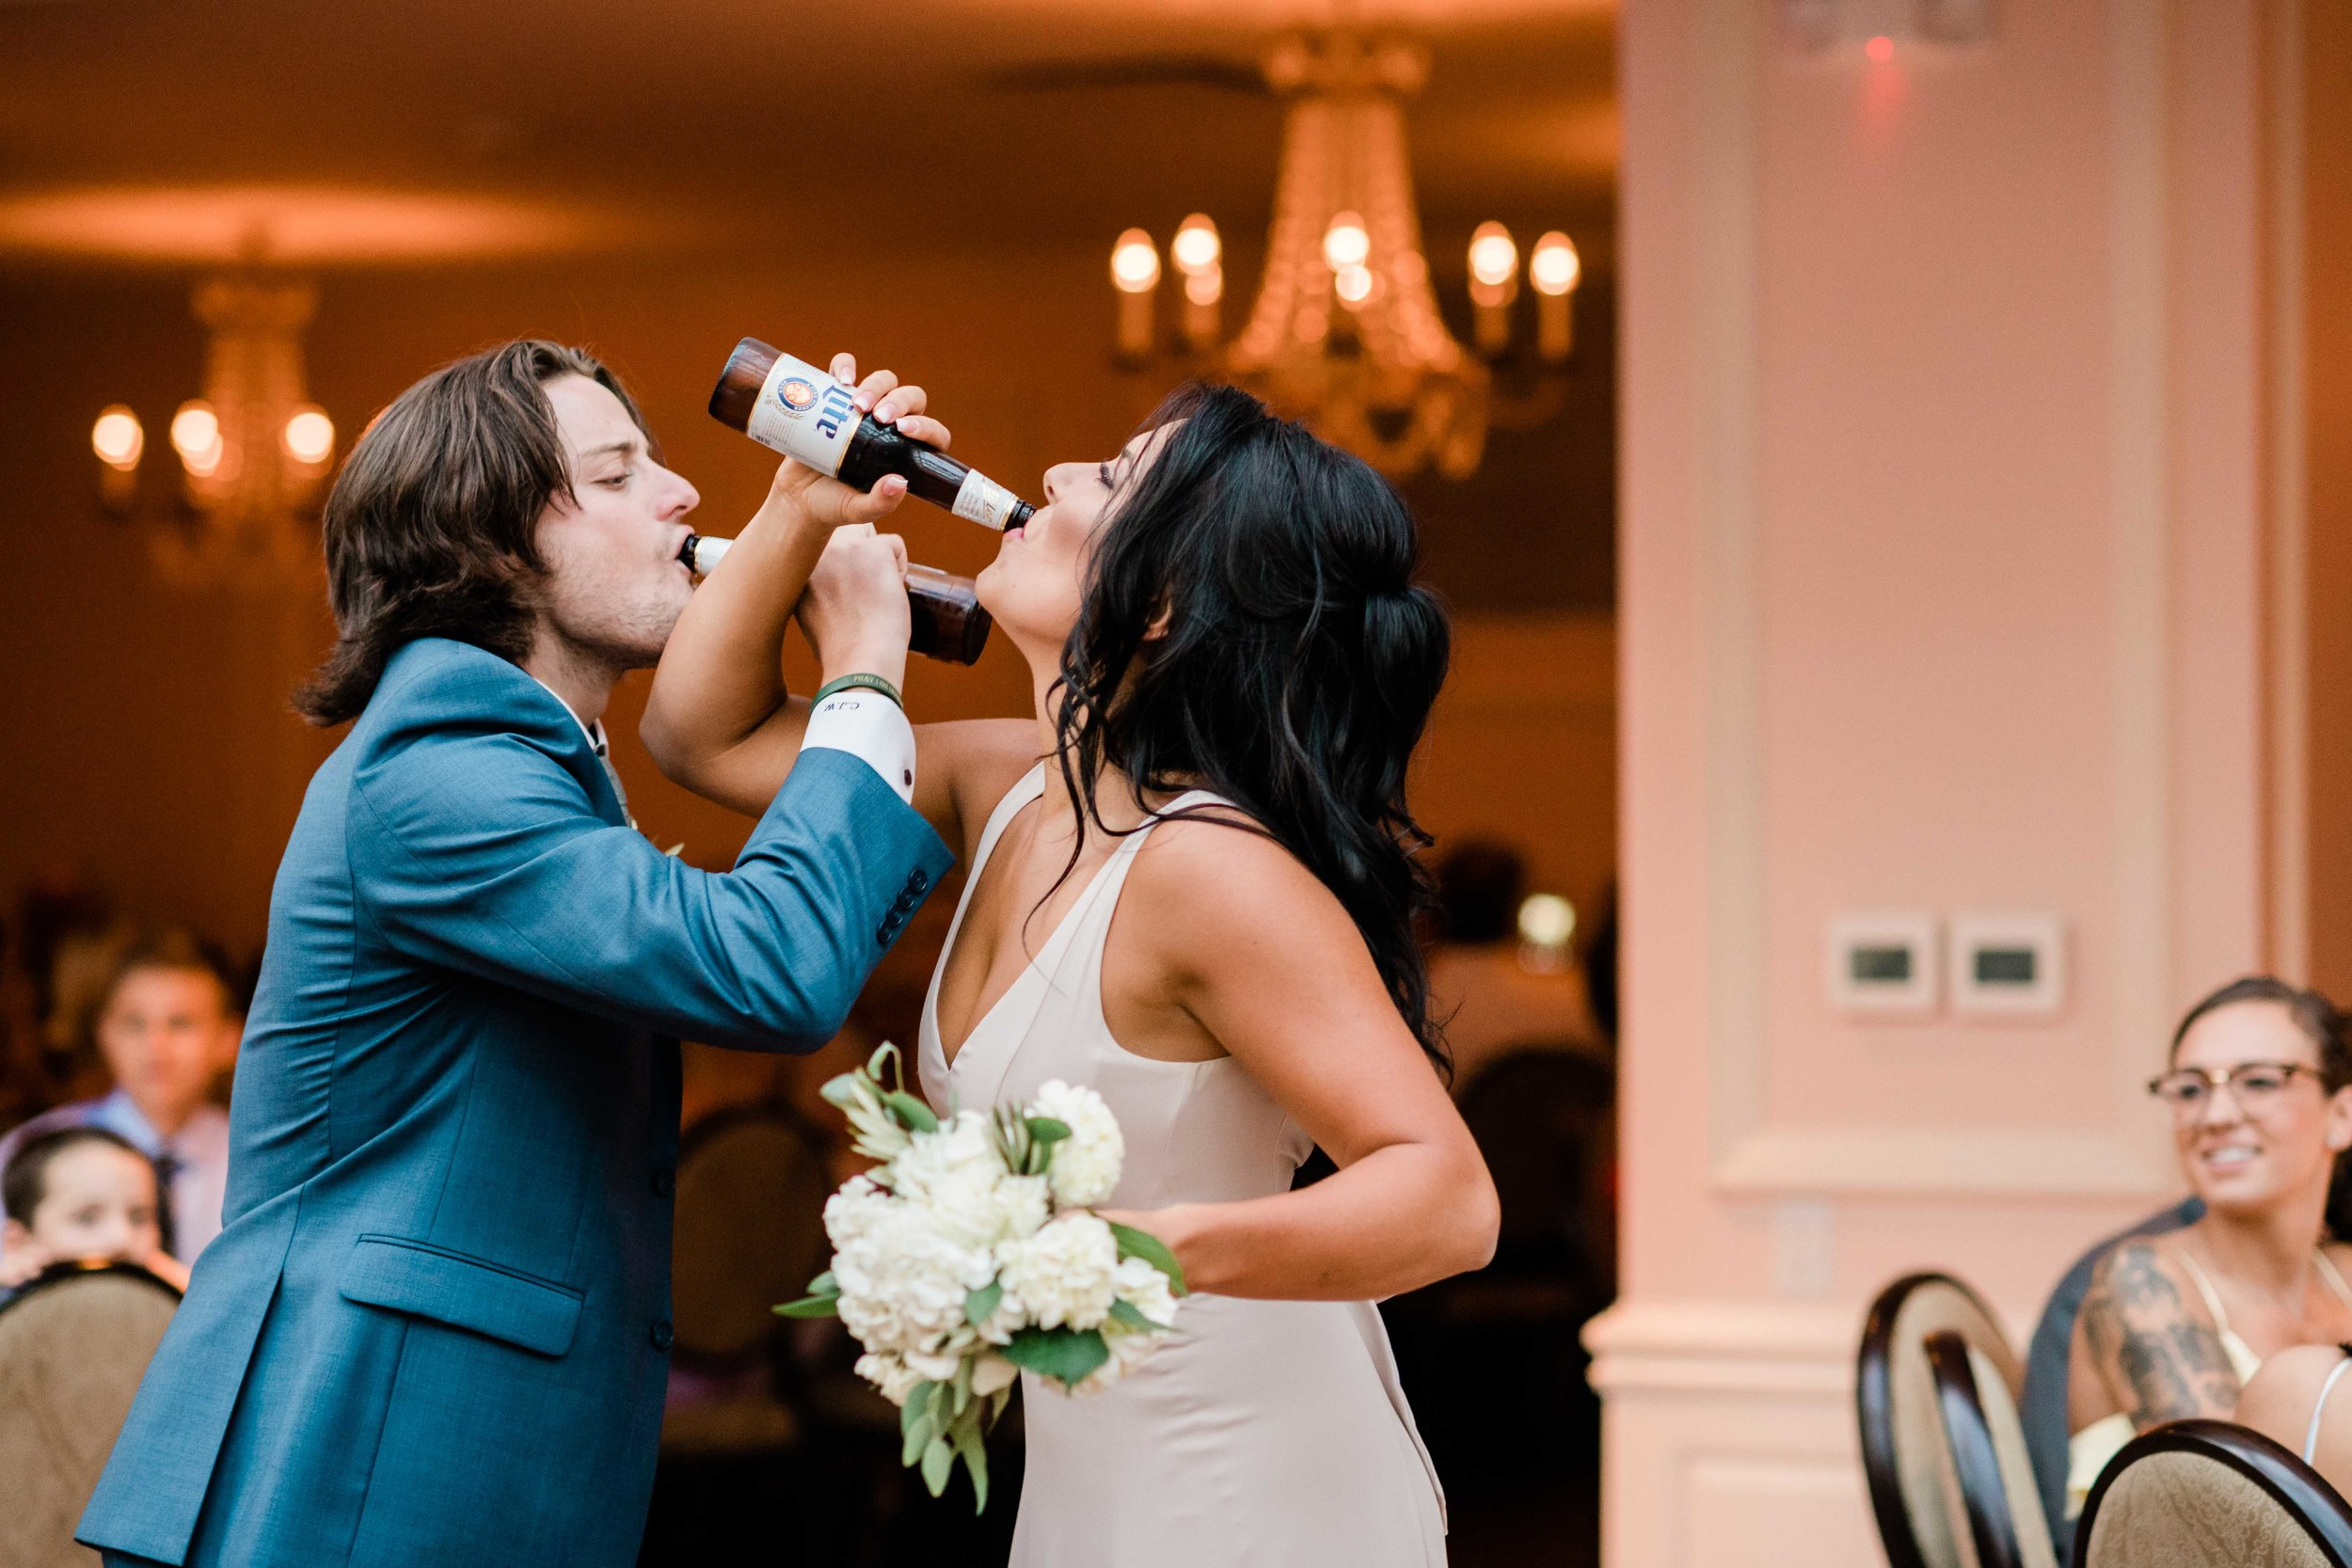 Groomsmen and bridesmaid chug beer during grand entrance